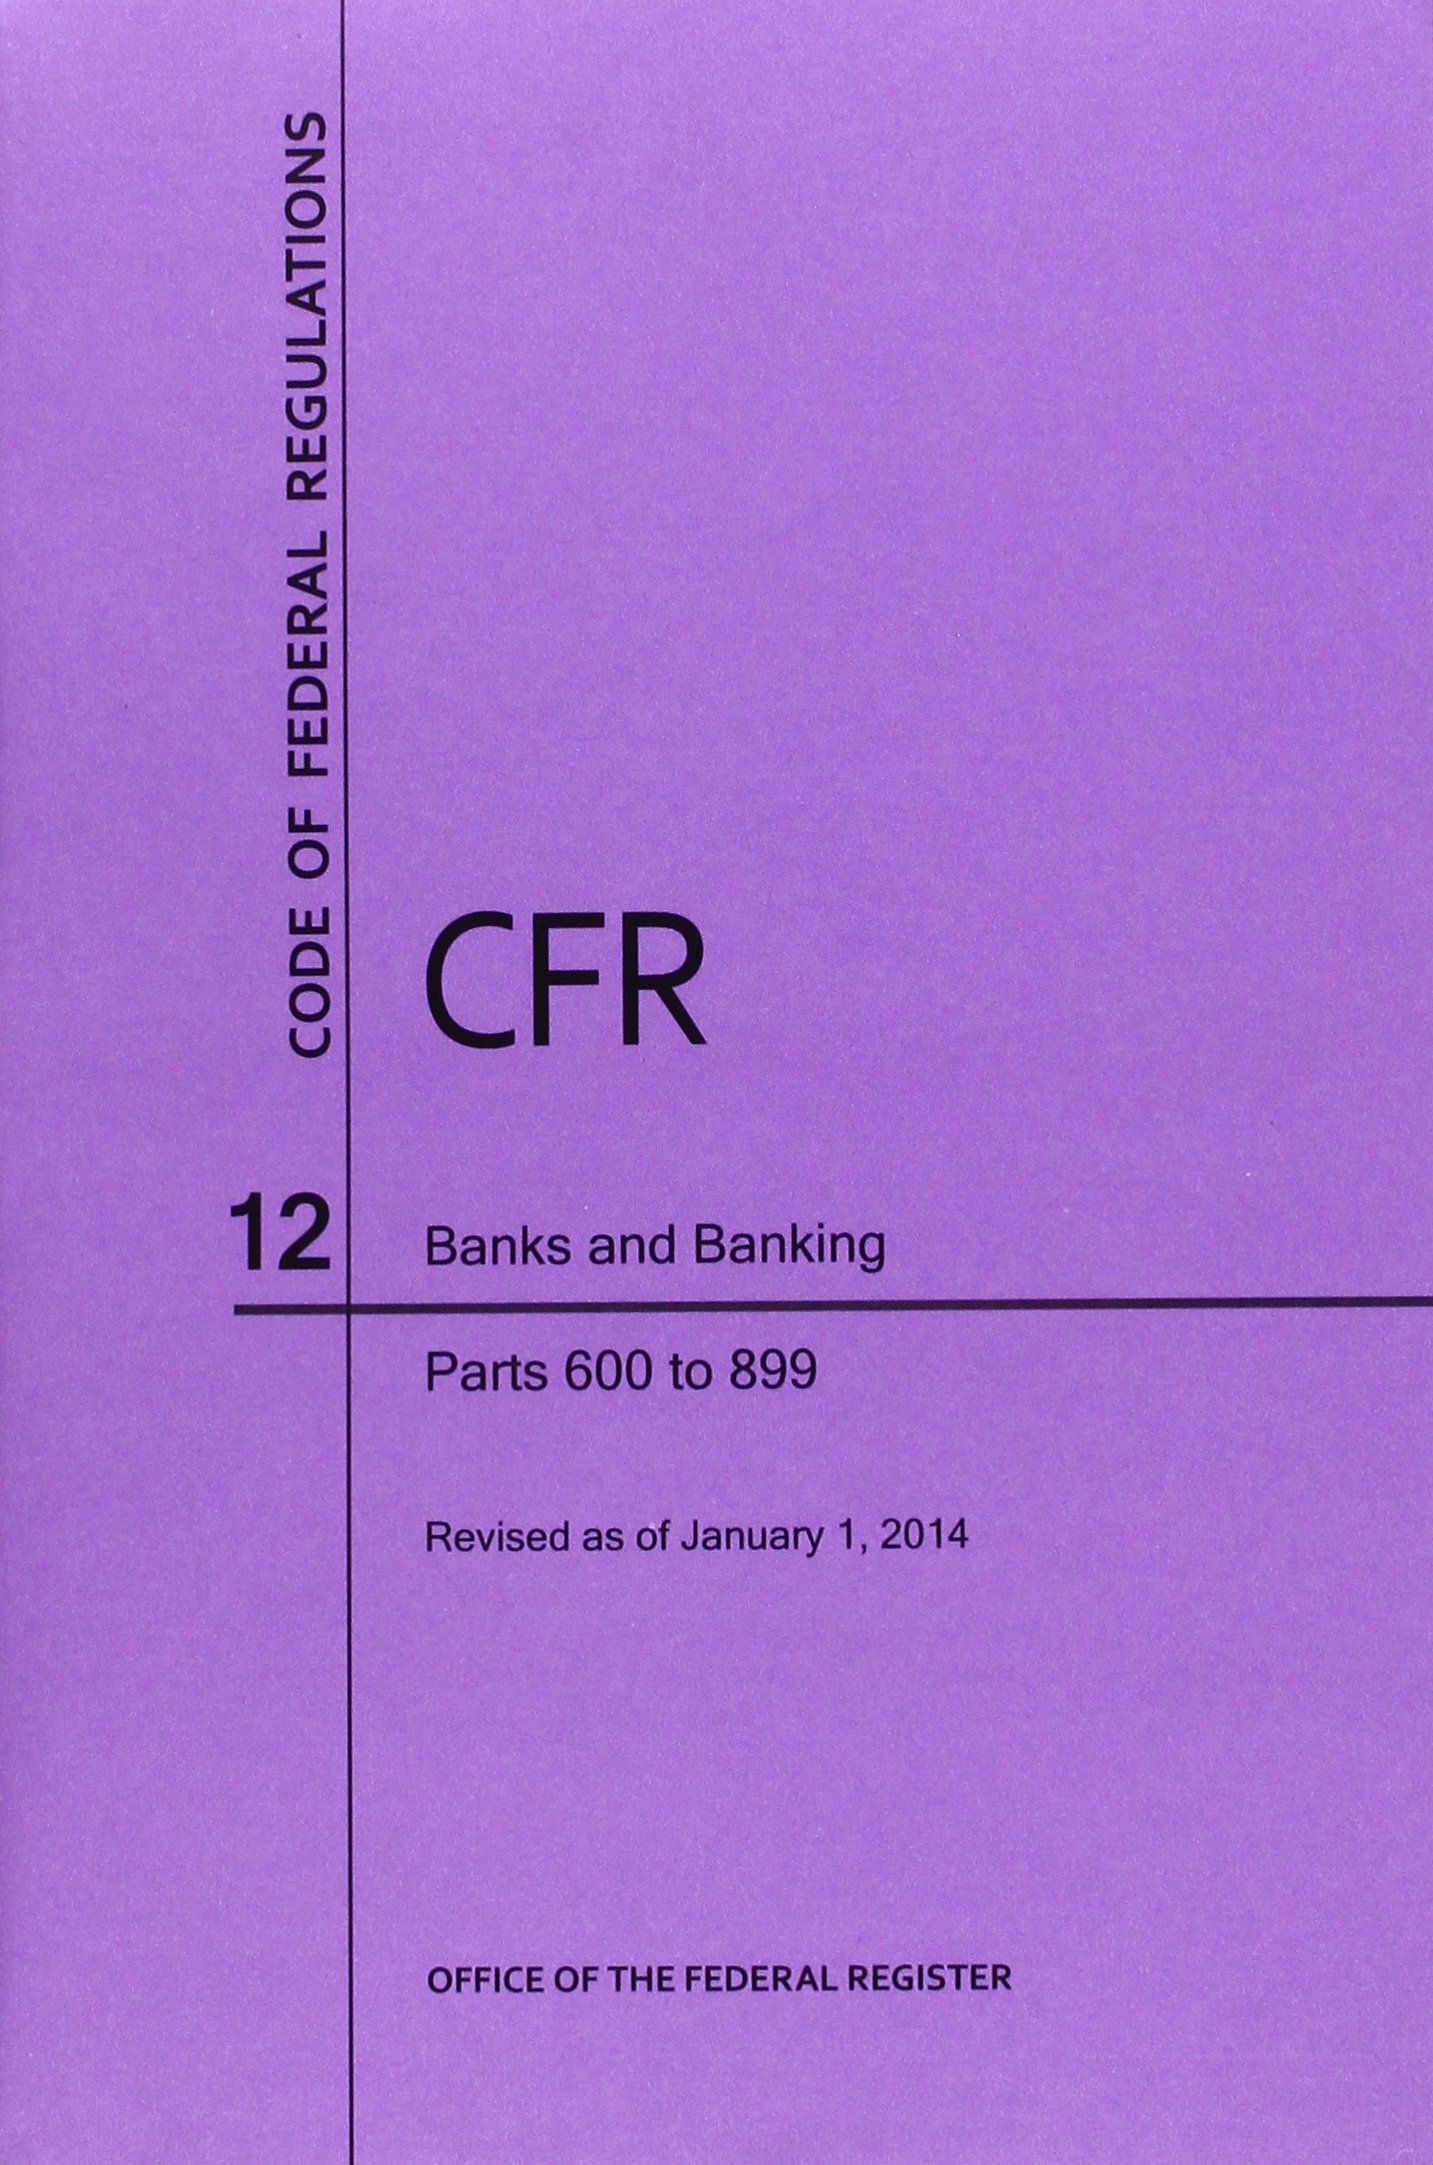 Download Code of Federal Regulations, Title 12, Banks and Banking, Pt. 600-899. Revised as of January 1, 2014 ebook